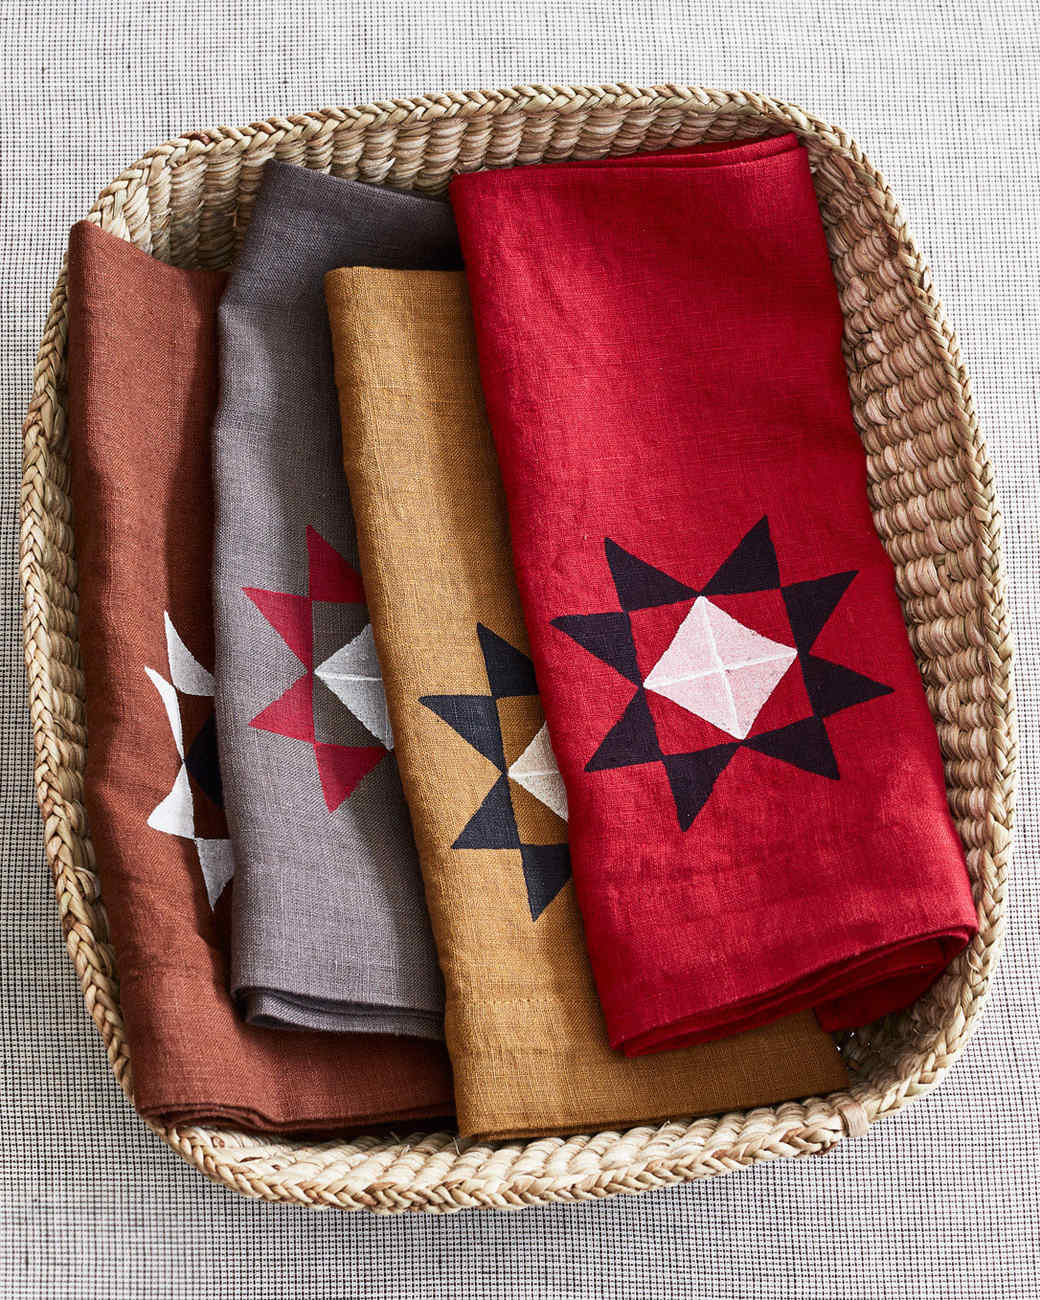 amish star table linens in basket